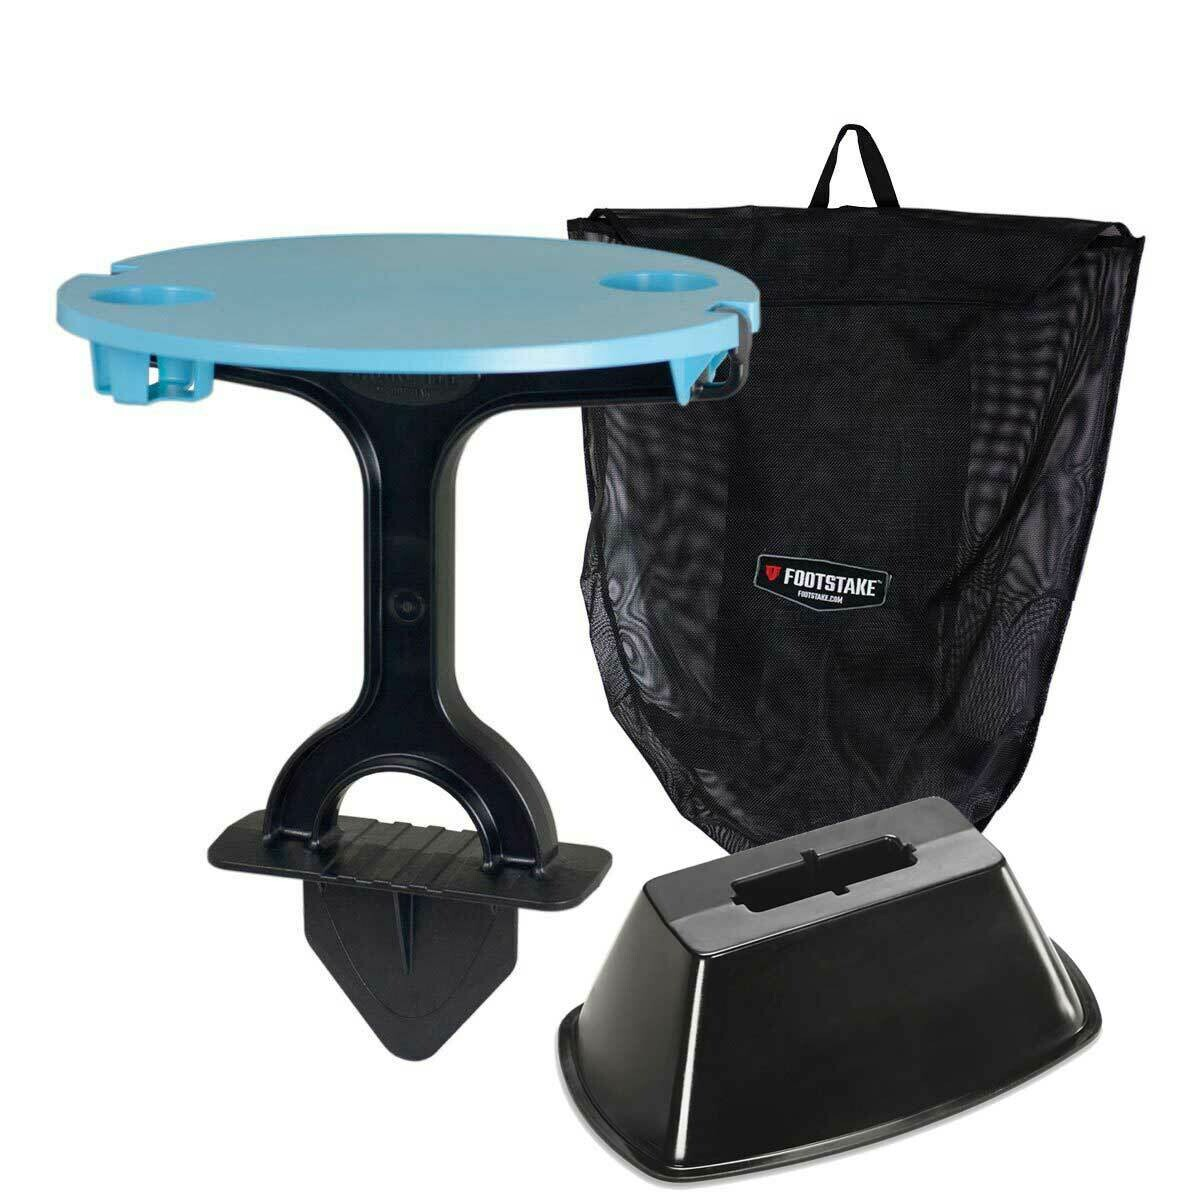 FootStake Blue Outdoor Table & Base Combo